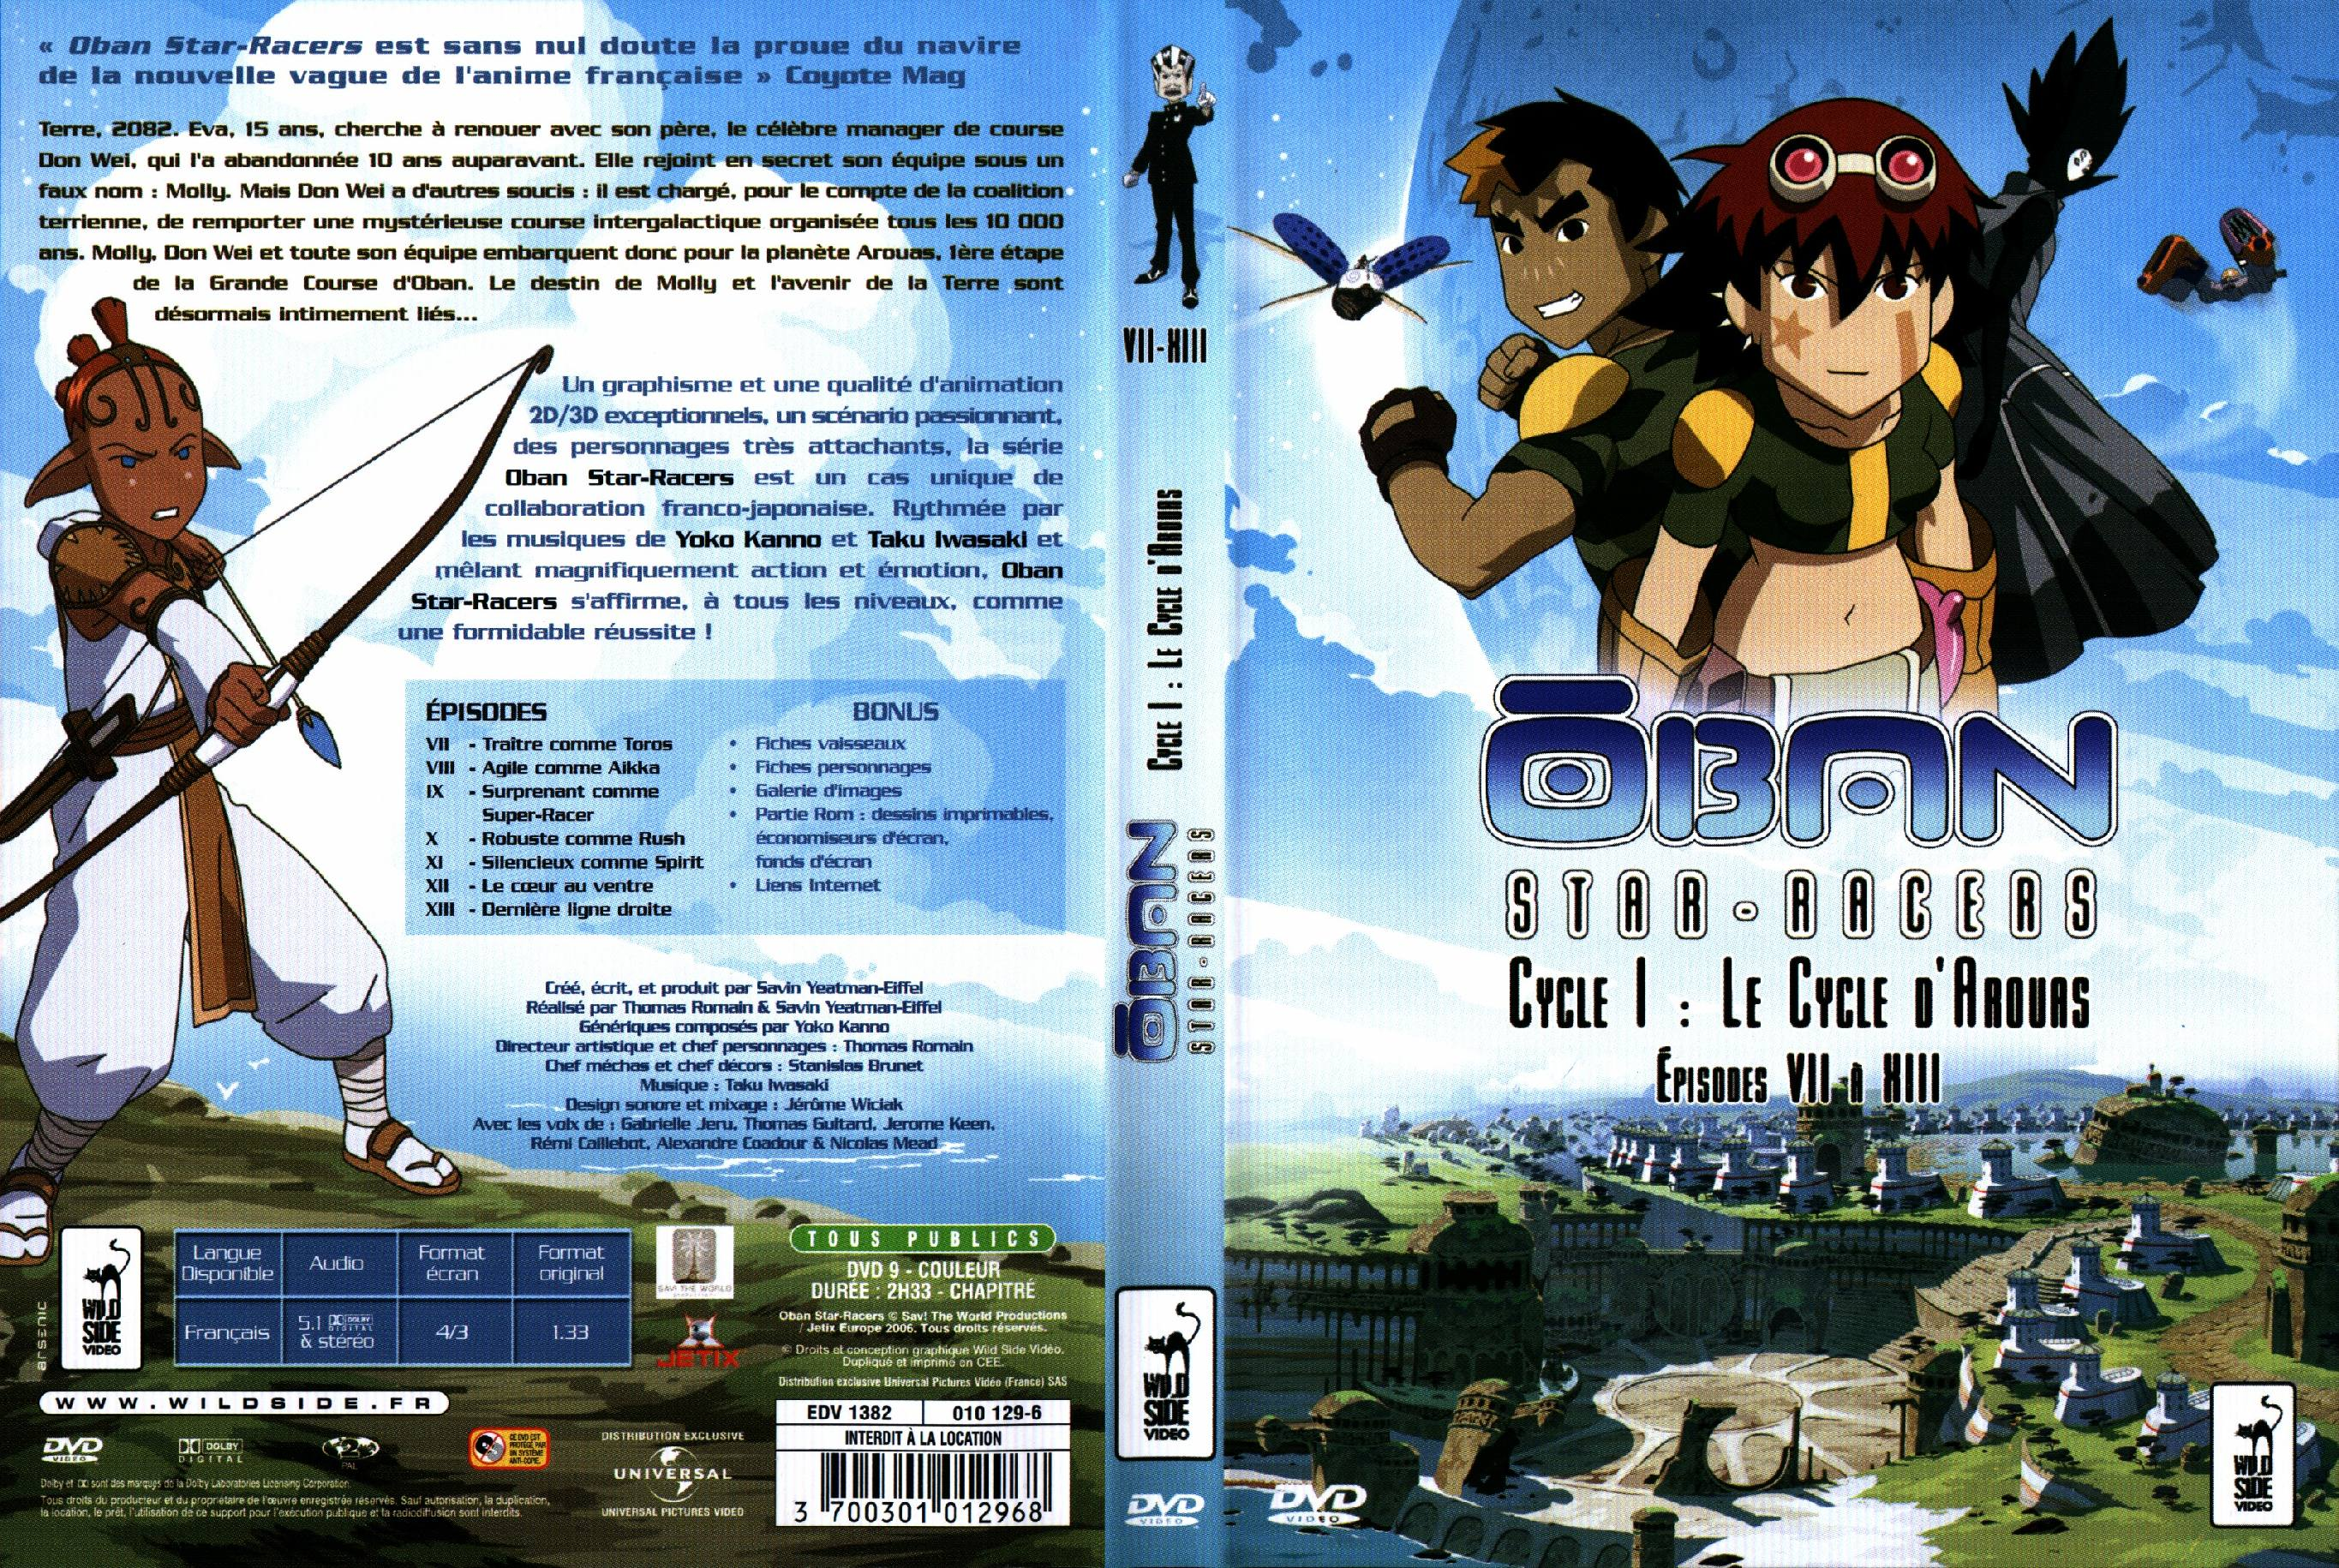 Oban star racers vol 2